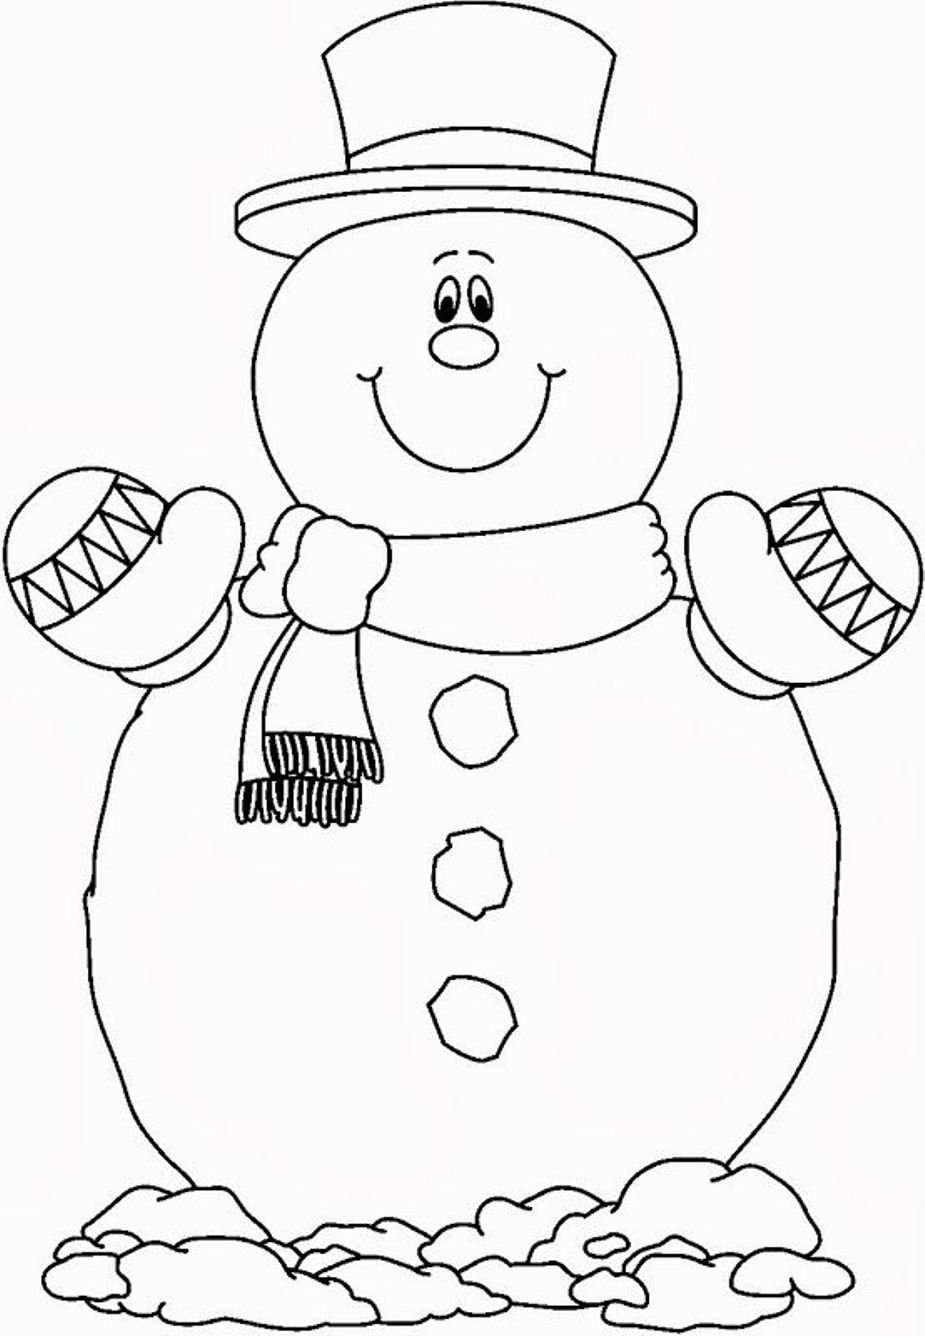 Neoteric Snowman Coloring Page